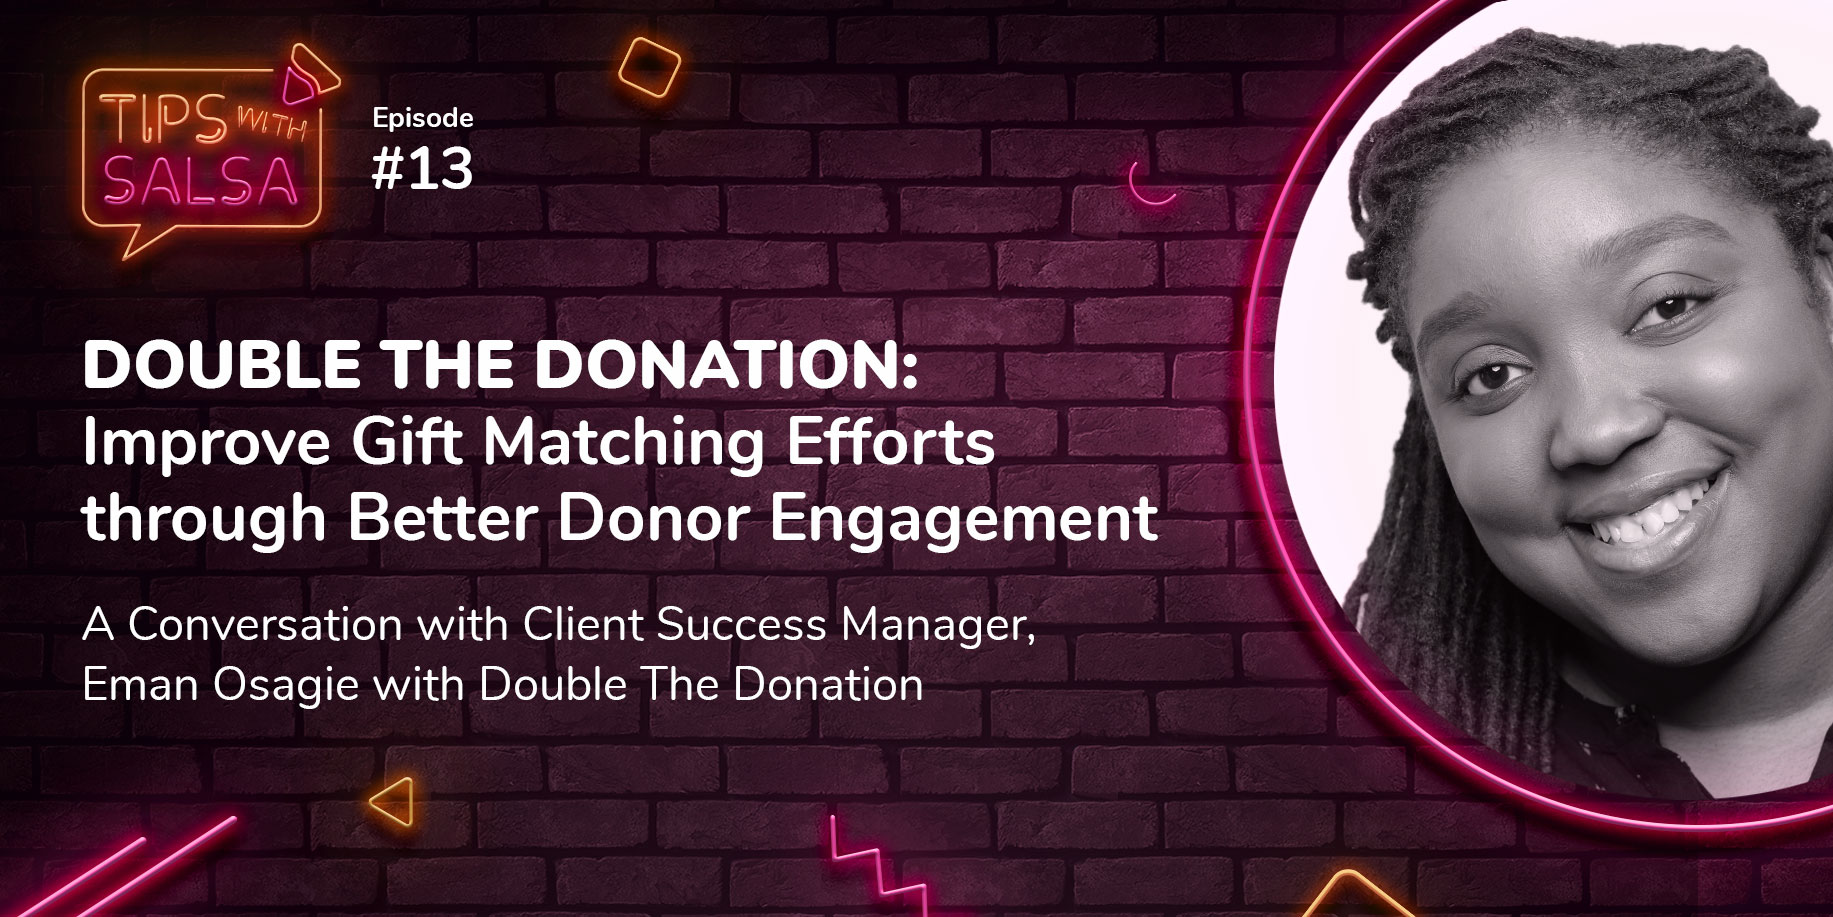 DOUBLE THE DONATION: Improve Gift Matching Efforts Through Better Donor Engagement